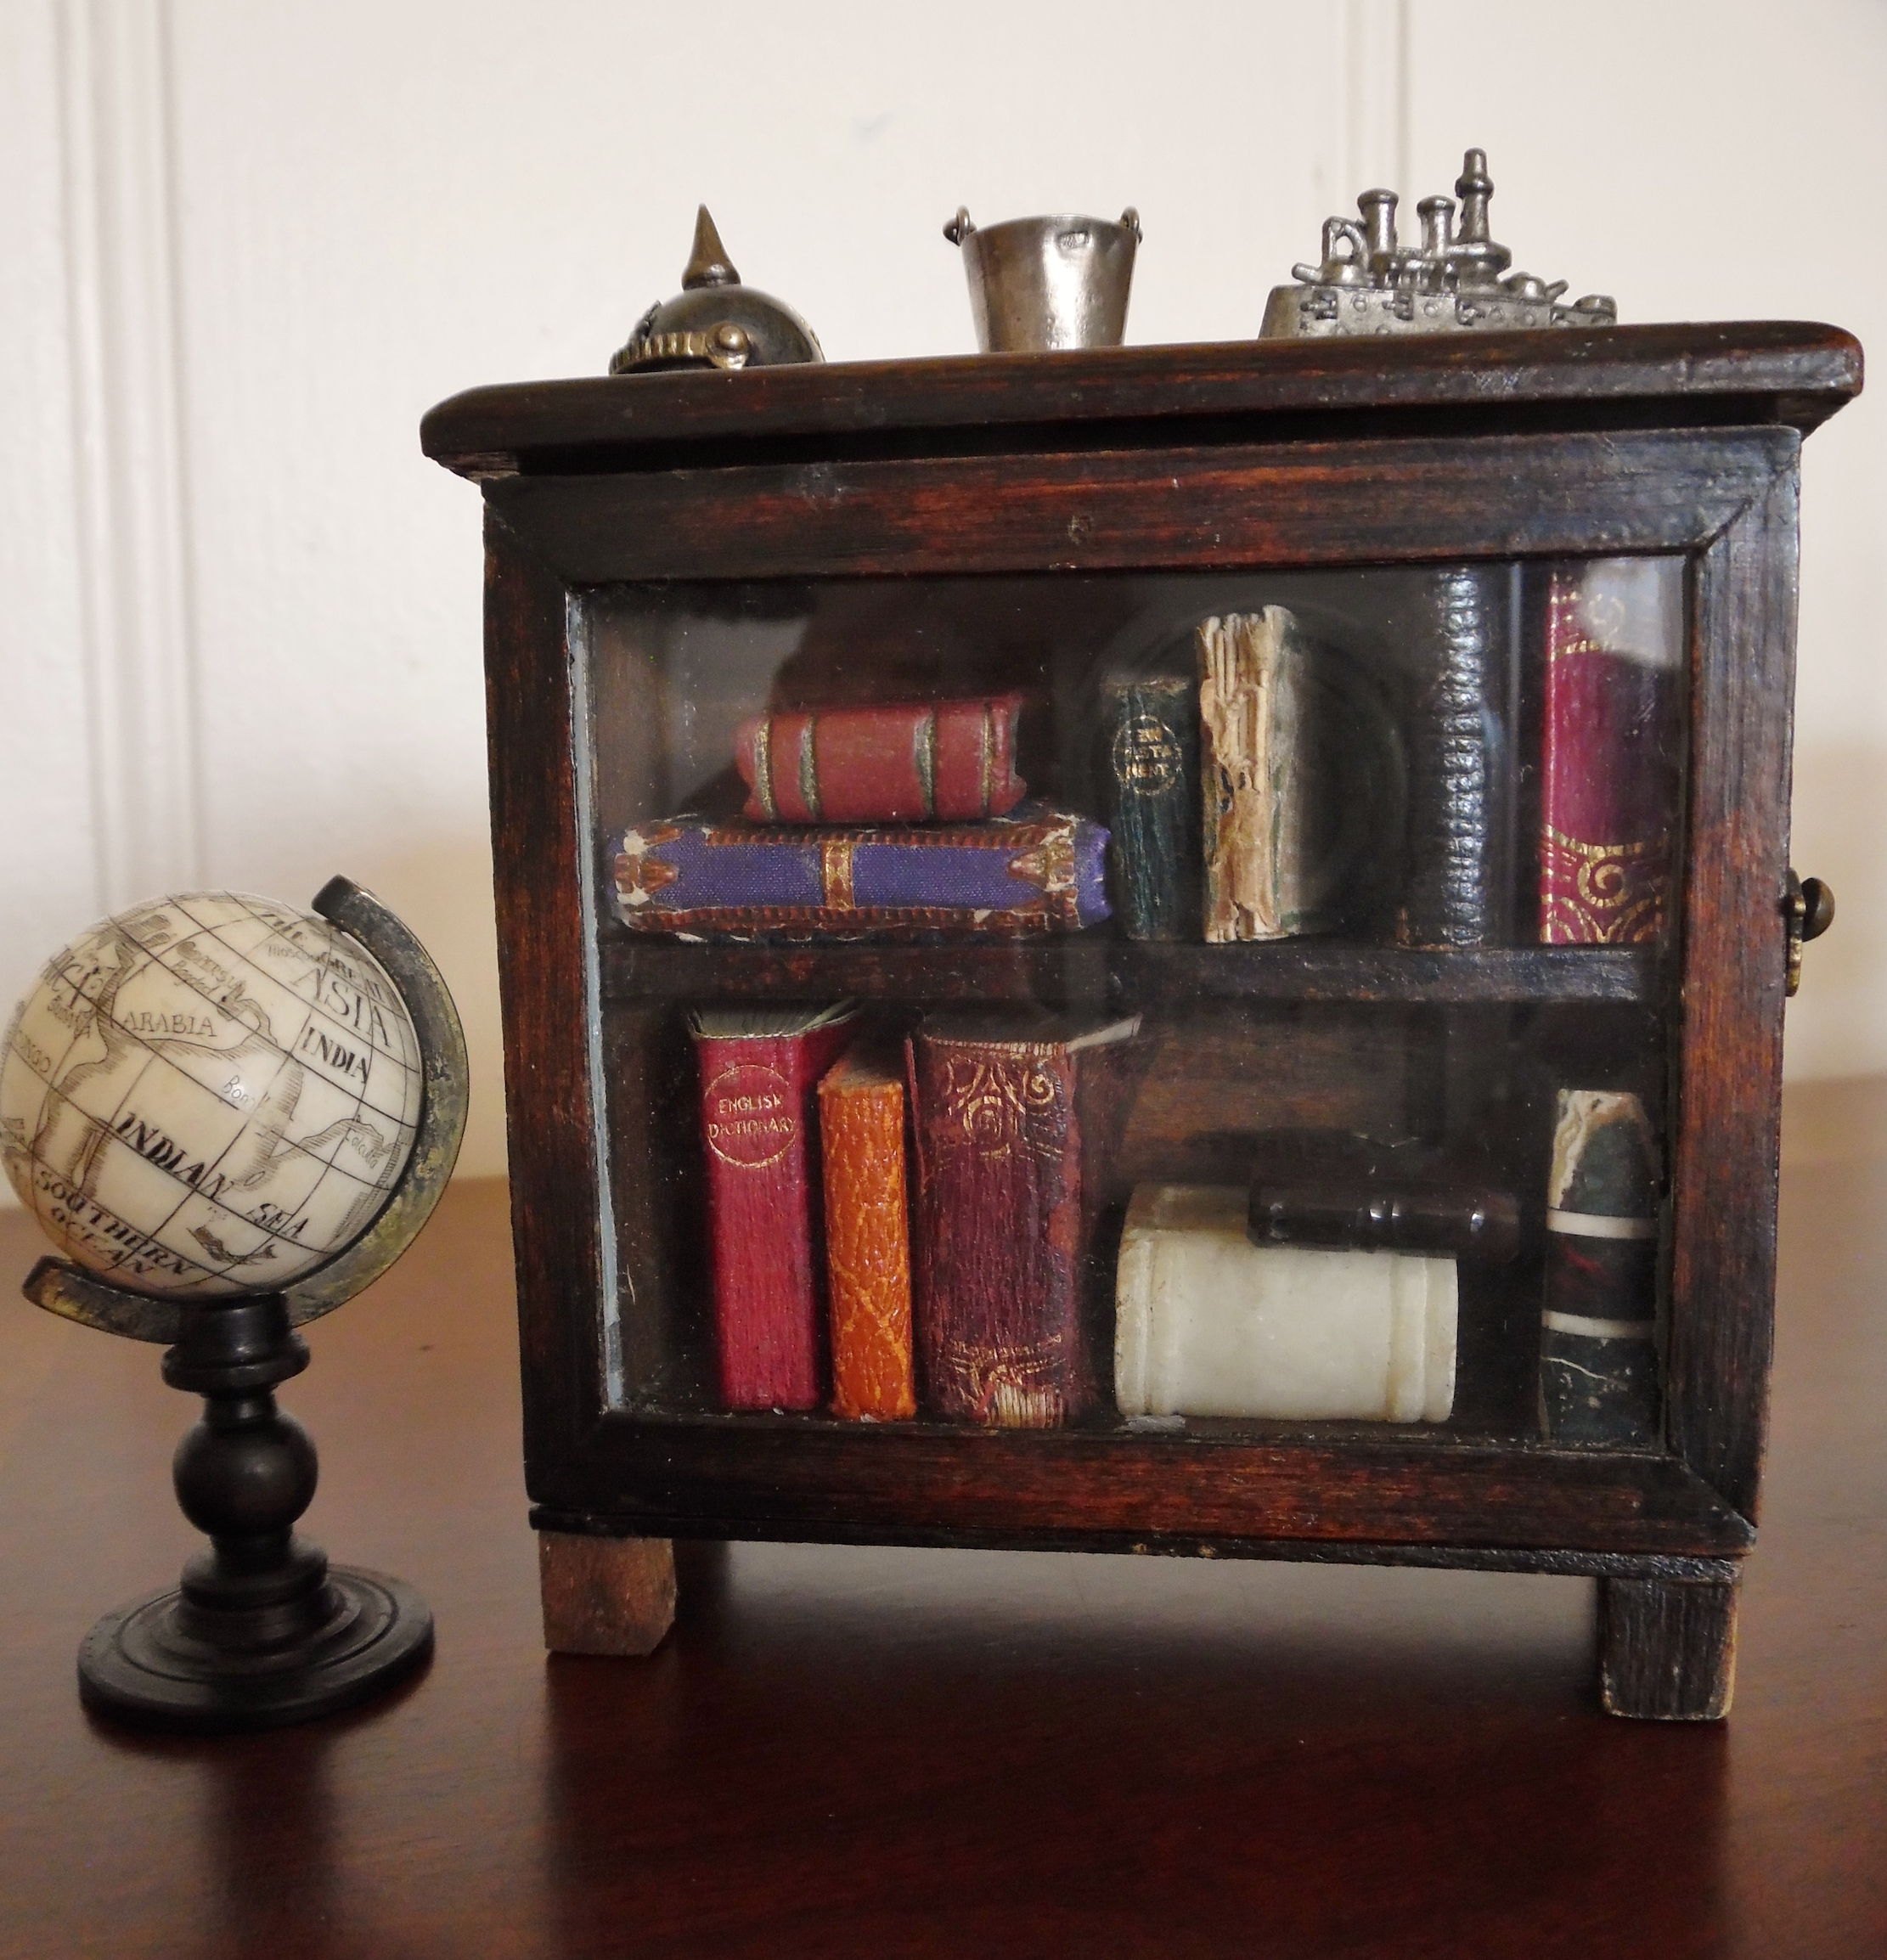 Bookcase and globe